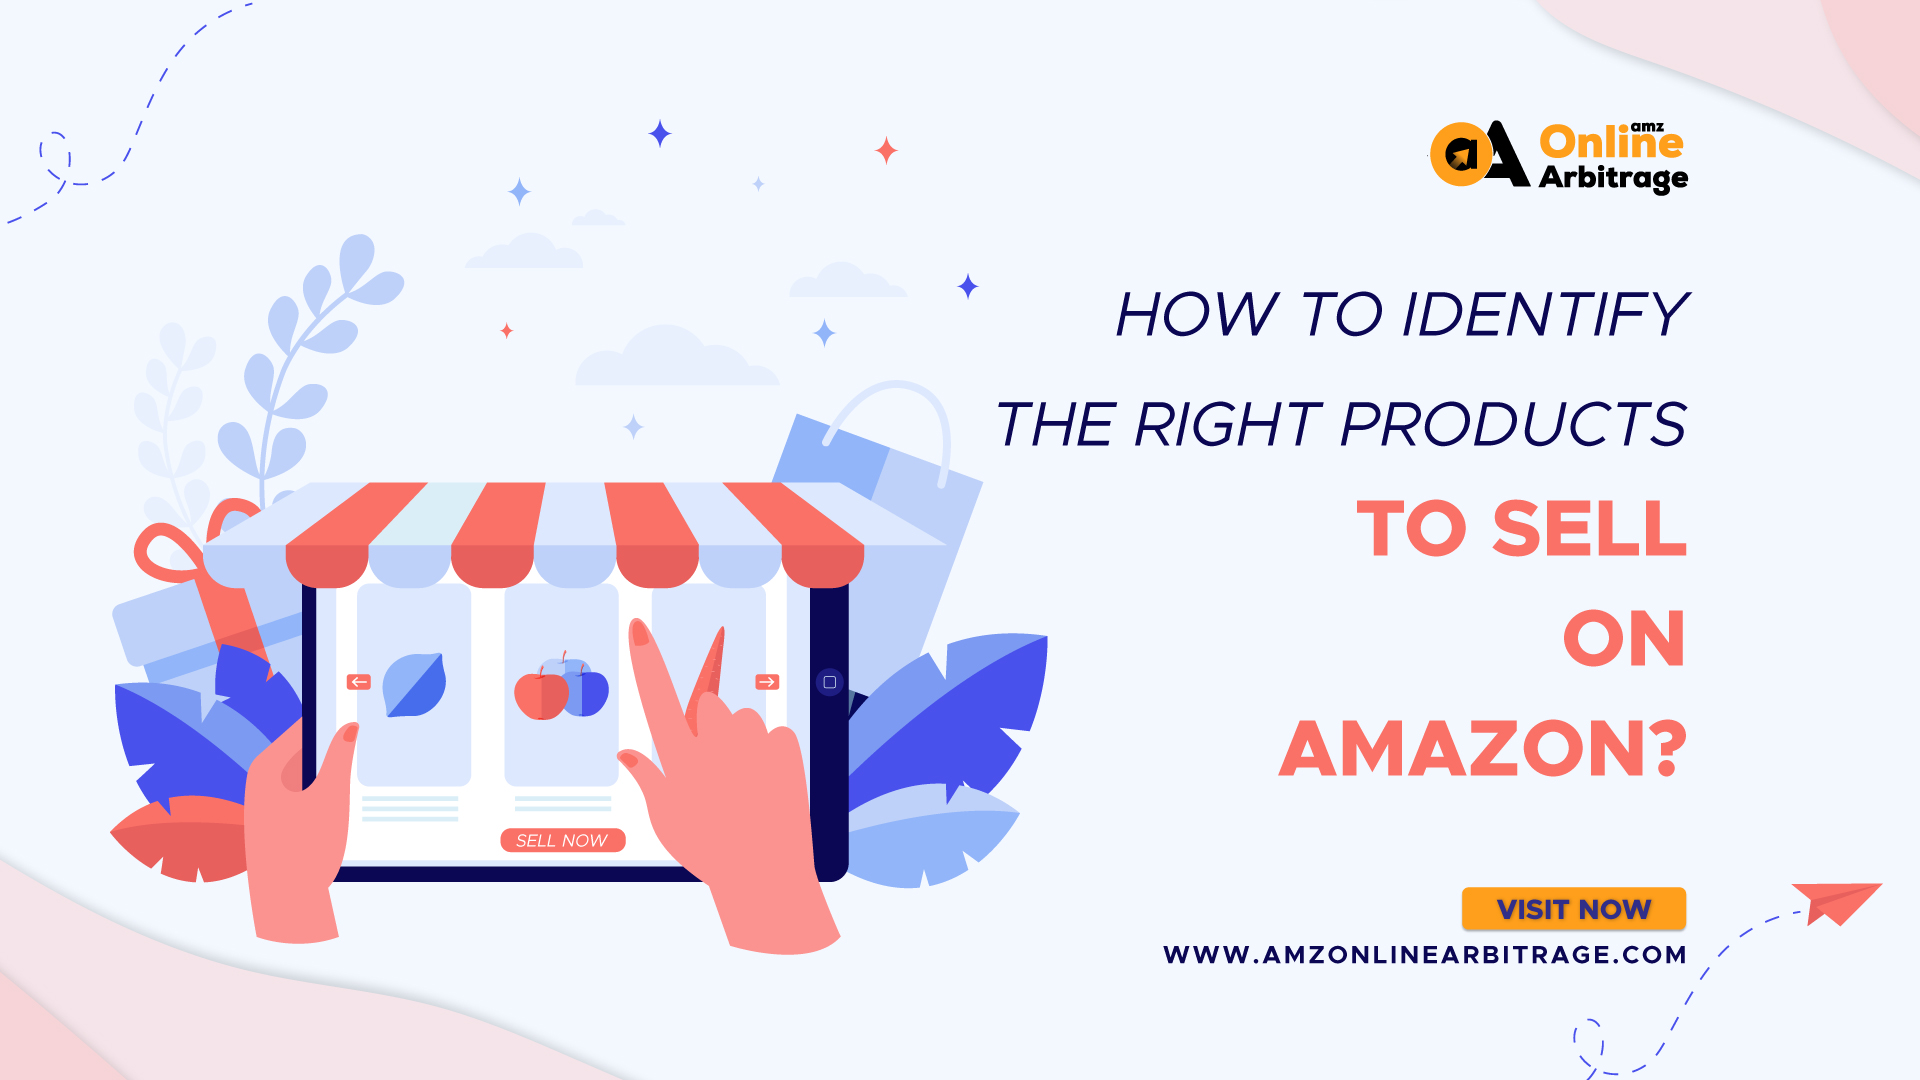 HOW TO IDENTIFY THE RIGHT PRODUCTS TO SELL ON AMAZON?